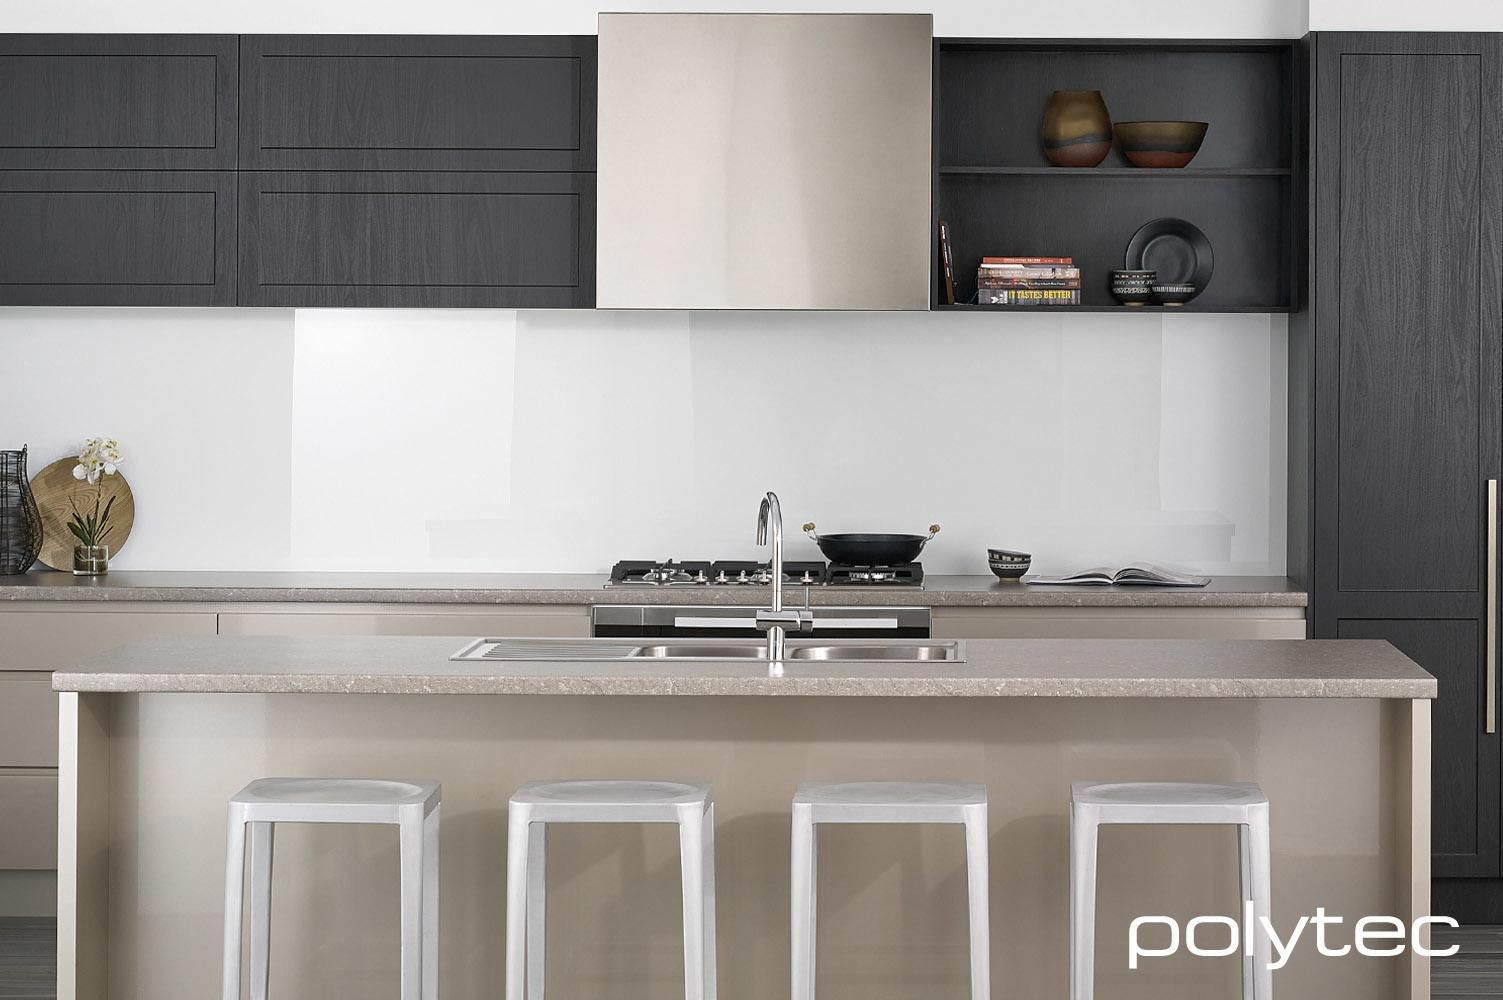 Tempest Colours Polytec Themolaminated Doors In Tempest Woodgrain Kitchen Inspiration Design Kitchen Design Kitchen Cabinet Design